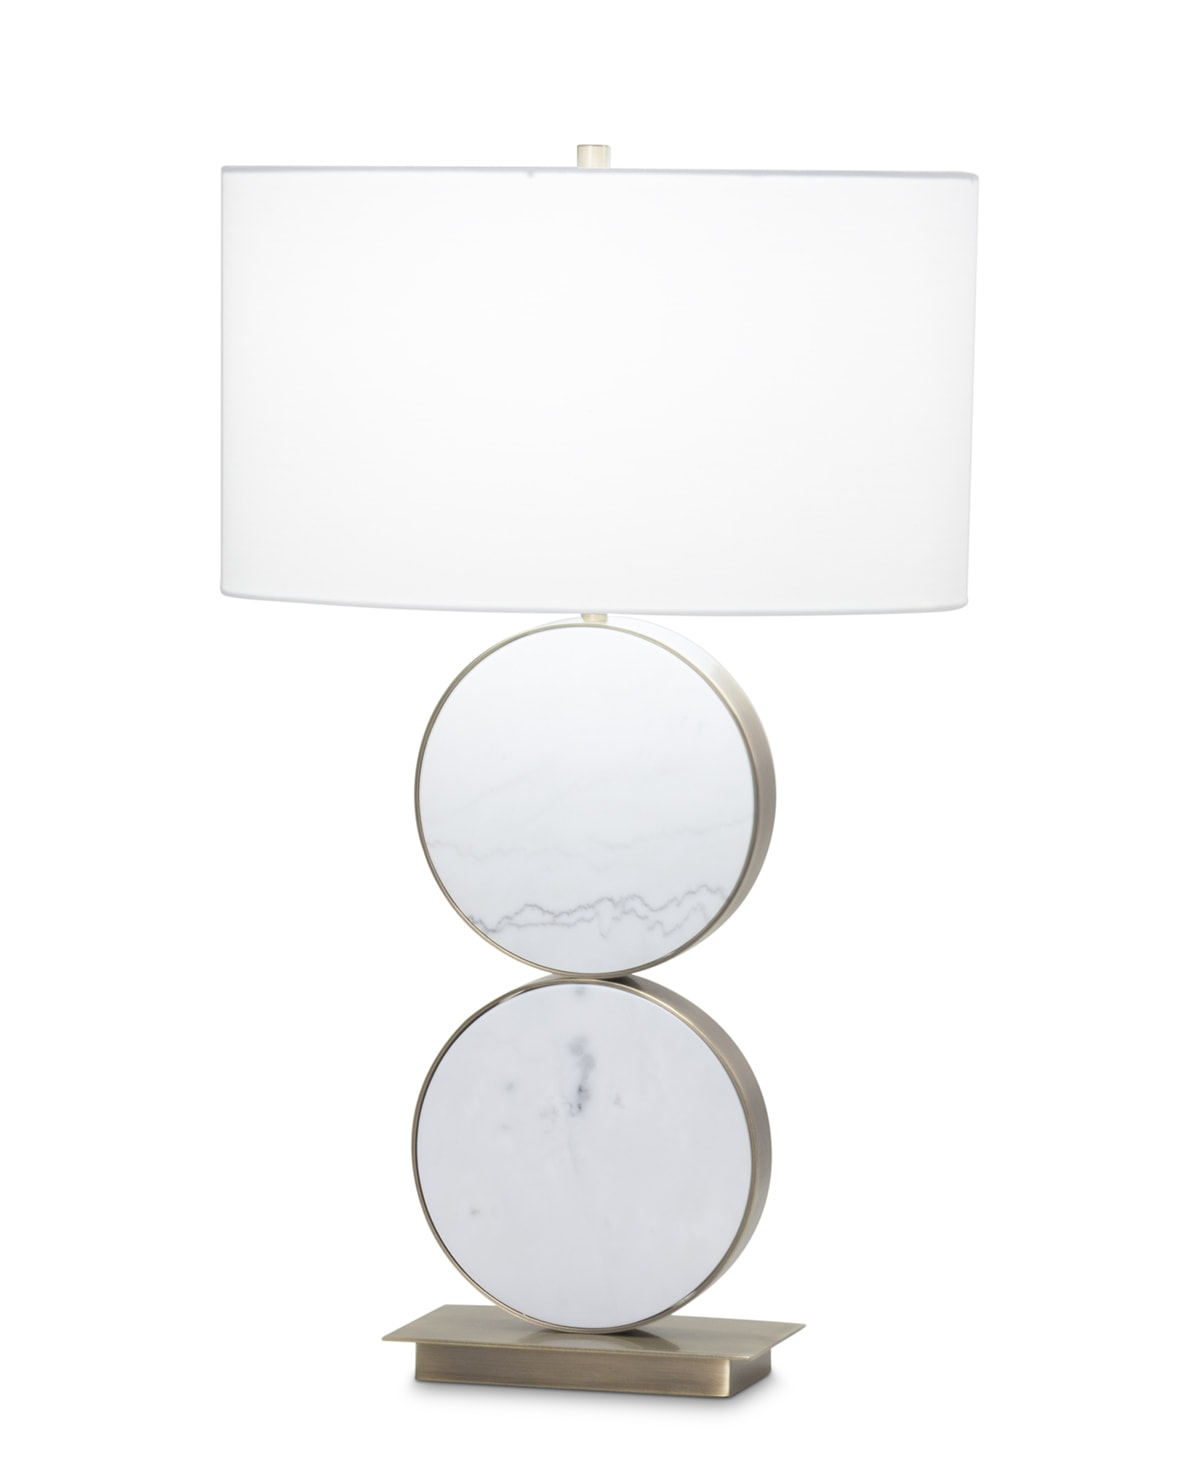 FlowDecor Daniels Table Lamp in white marble and metal with antique brass finish and off-white cotton oval shade (# 3881)